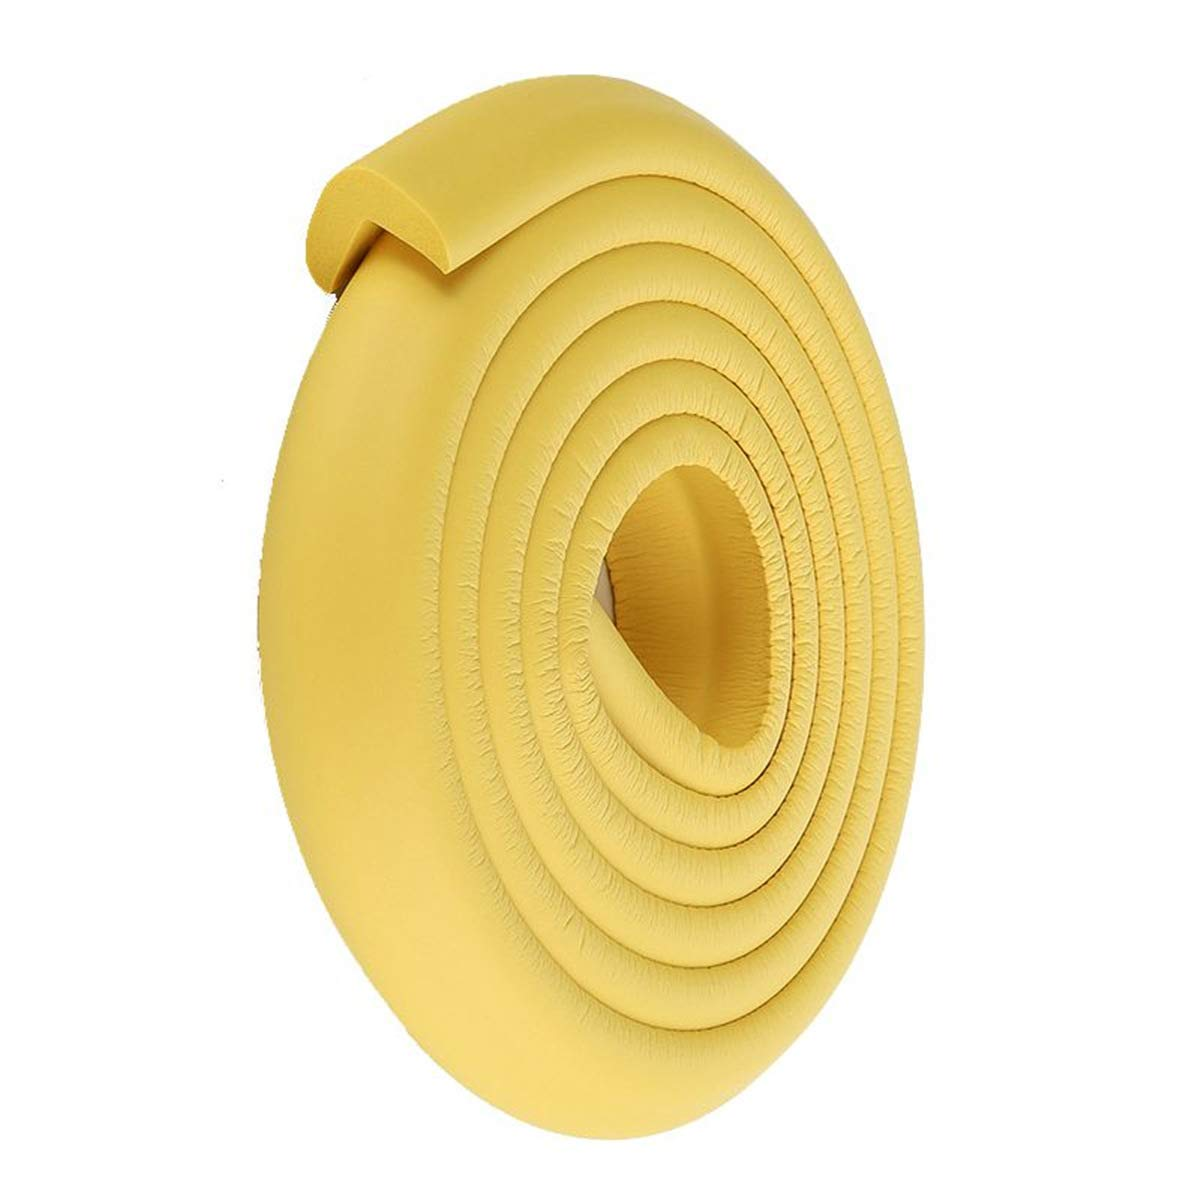 ECYC Baby Edge Corner Protection Cushion Guard Strip para muebles Mesa de escritorio 2M, Beige TM E41002270